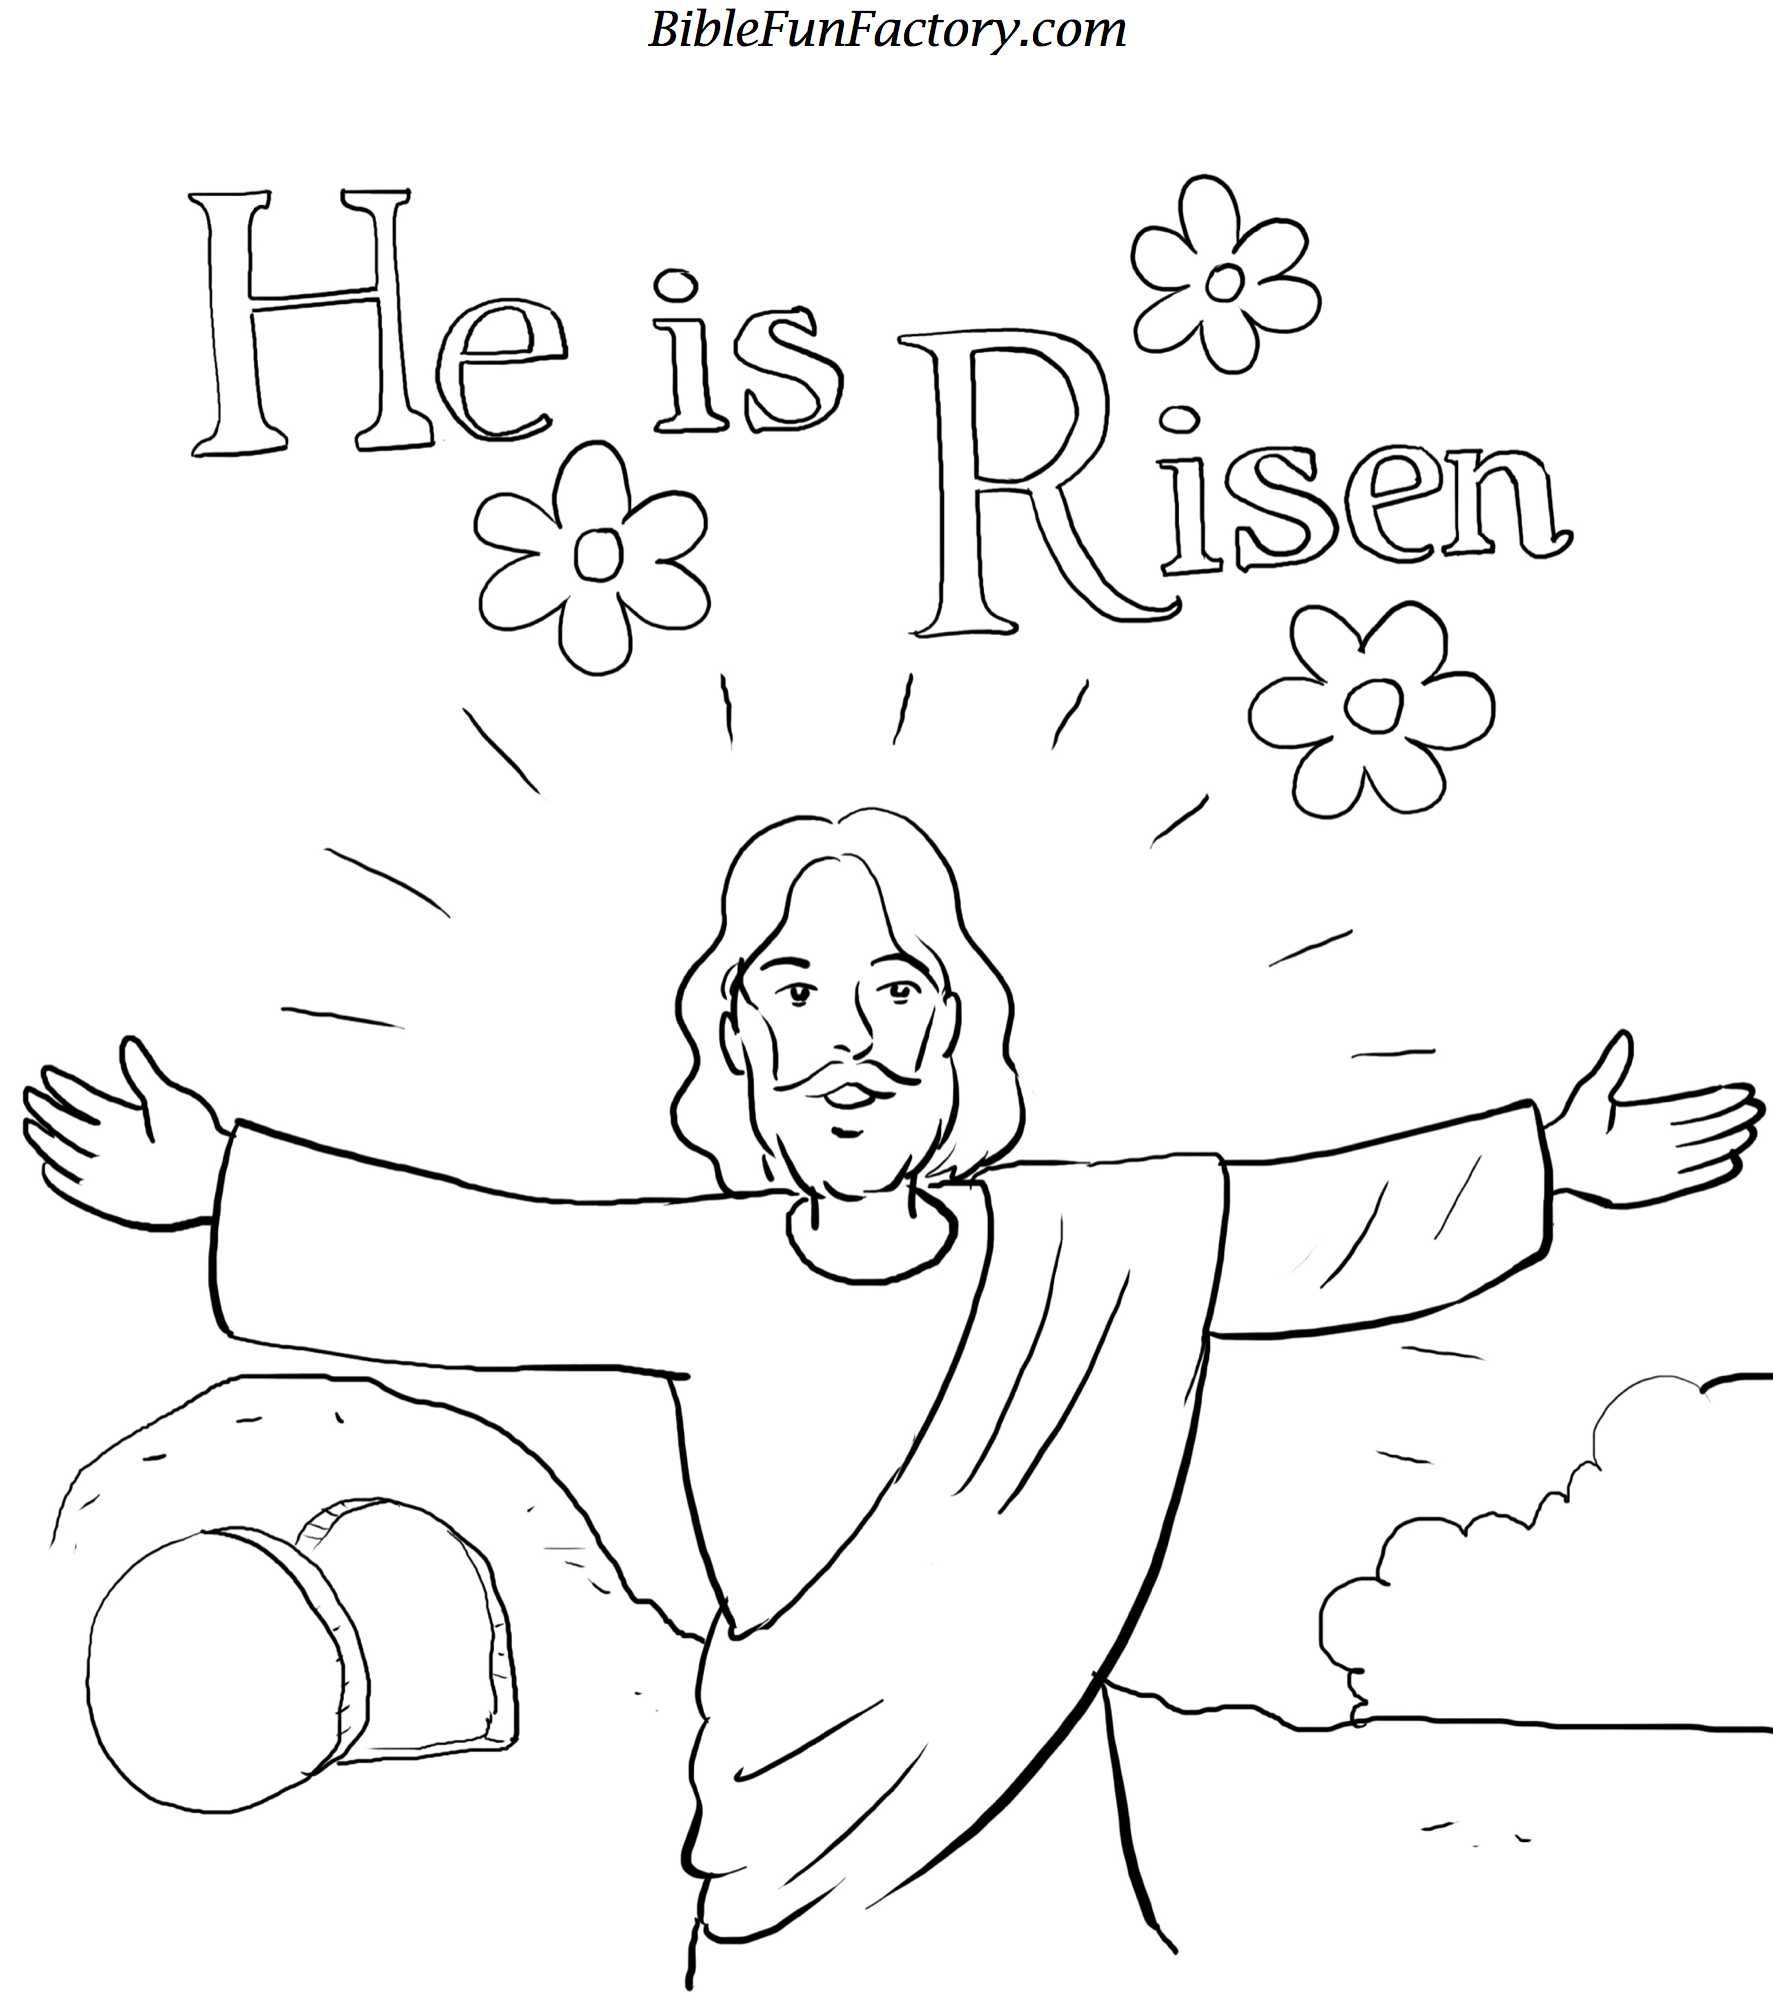 Resurrection Coloring Pages Free Easter Coloring Sheet Jesus Coloring Pages Sunday School Coloring Pages Easter Sunday School